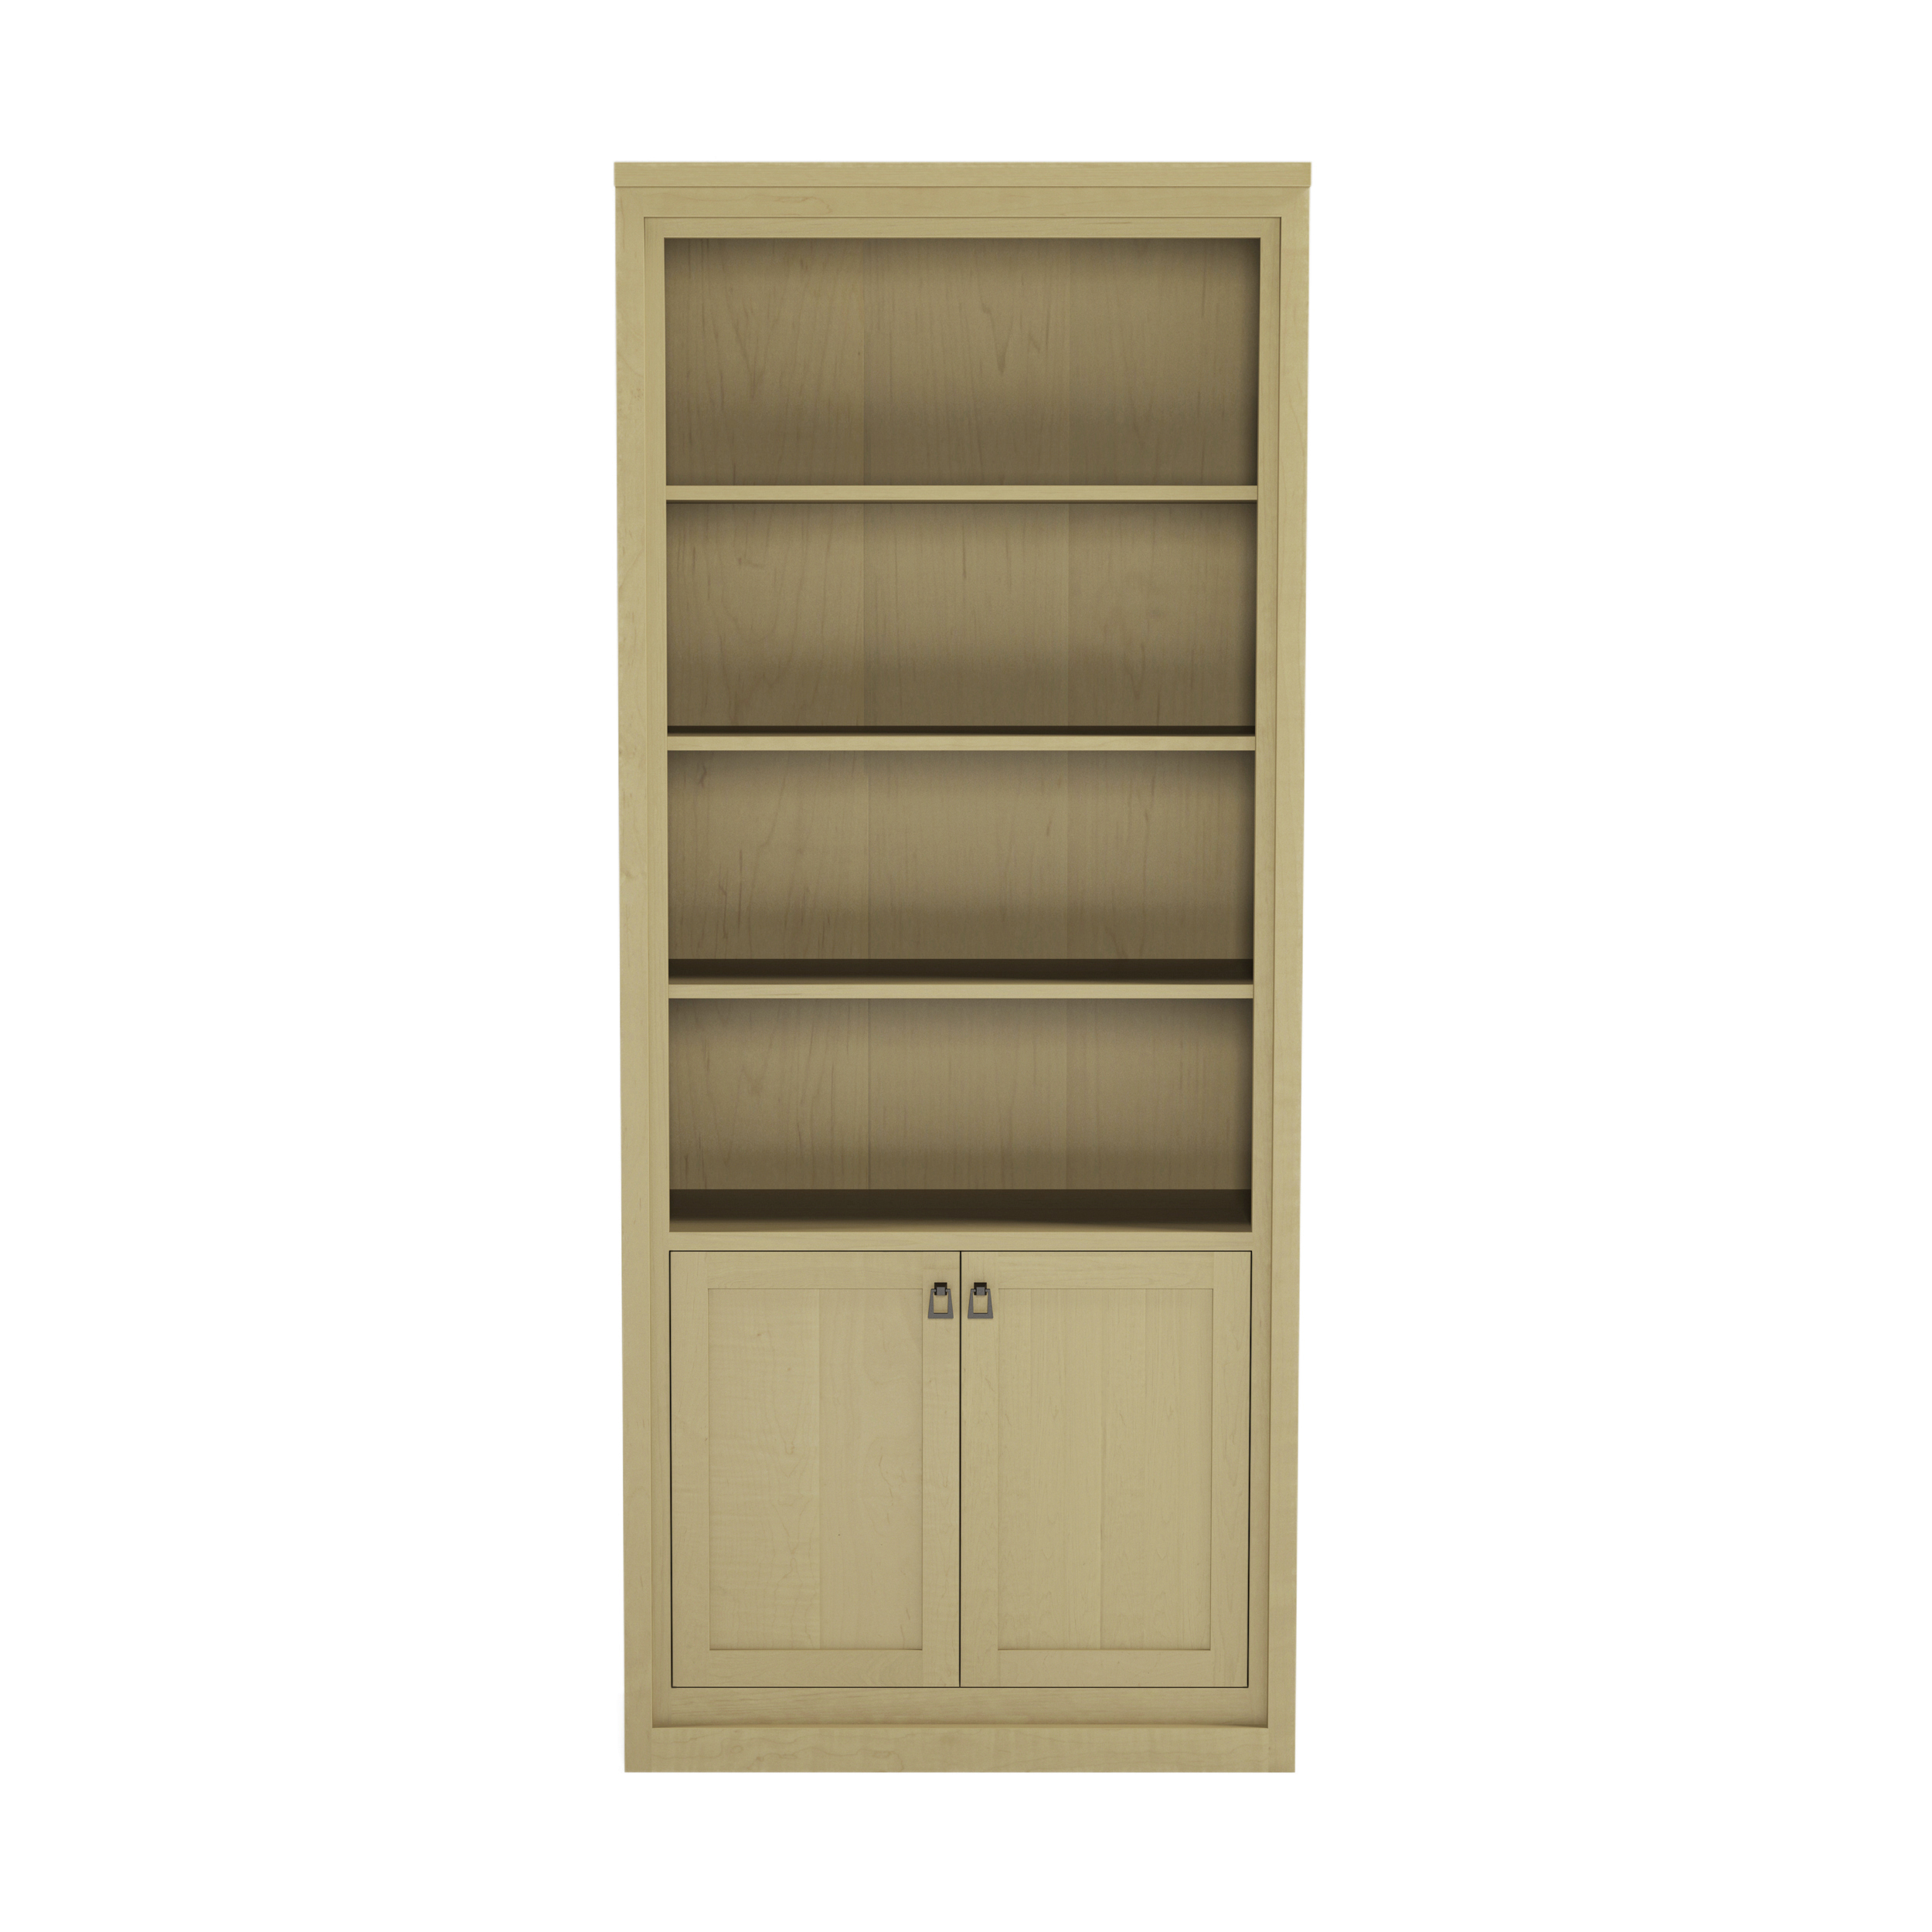 Framed_44 36″ Wide Bookshelf With Doors